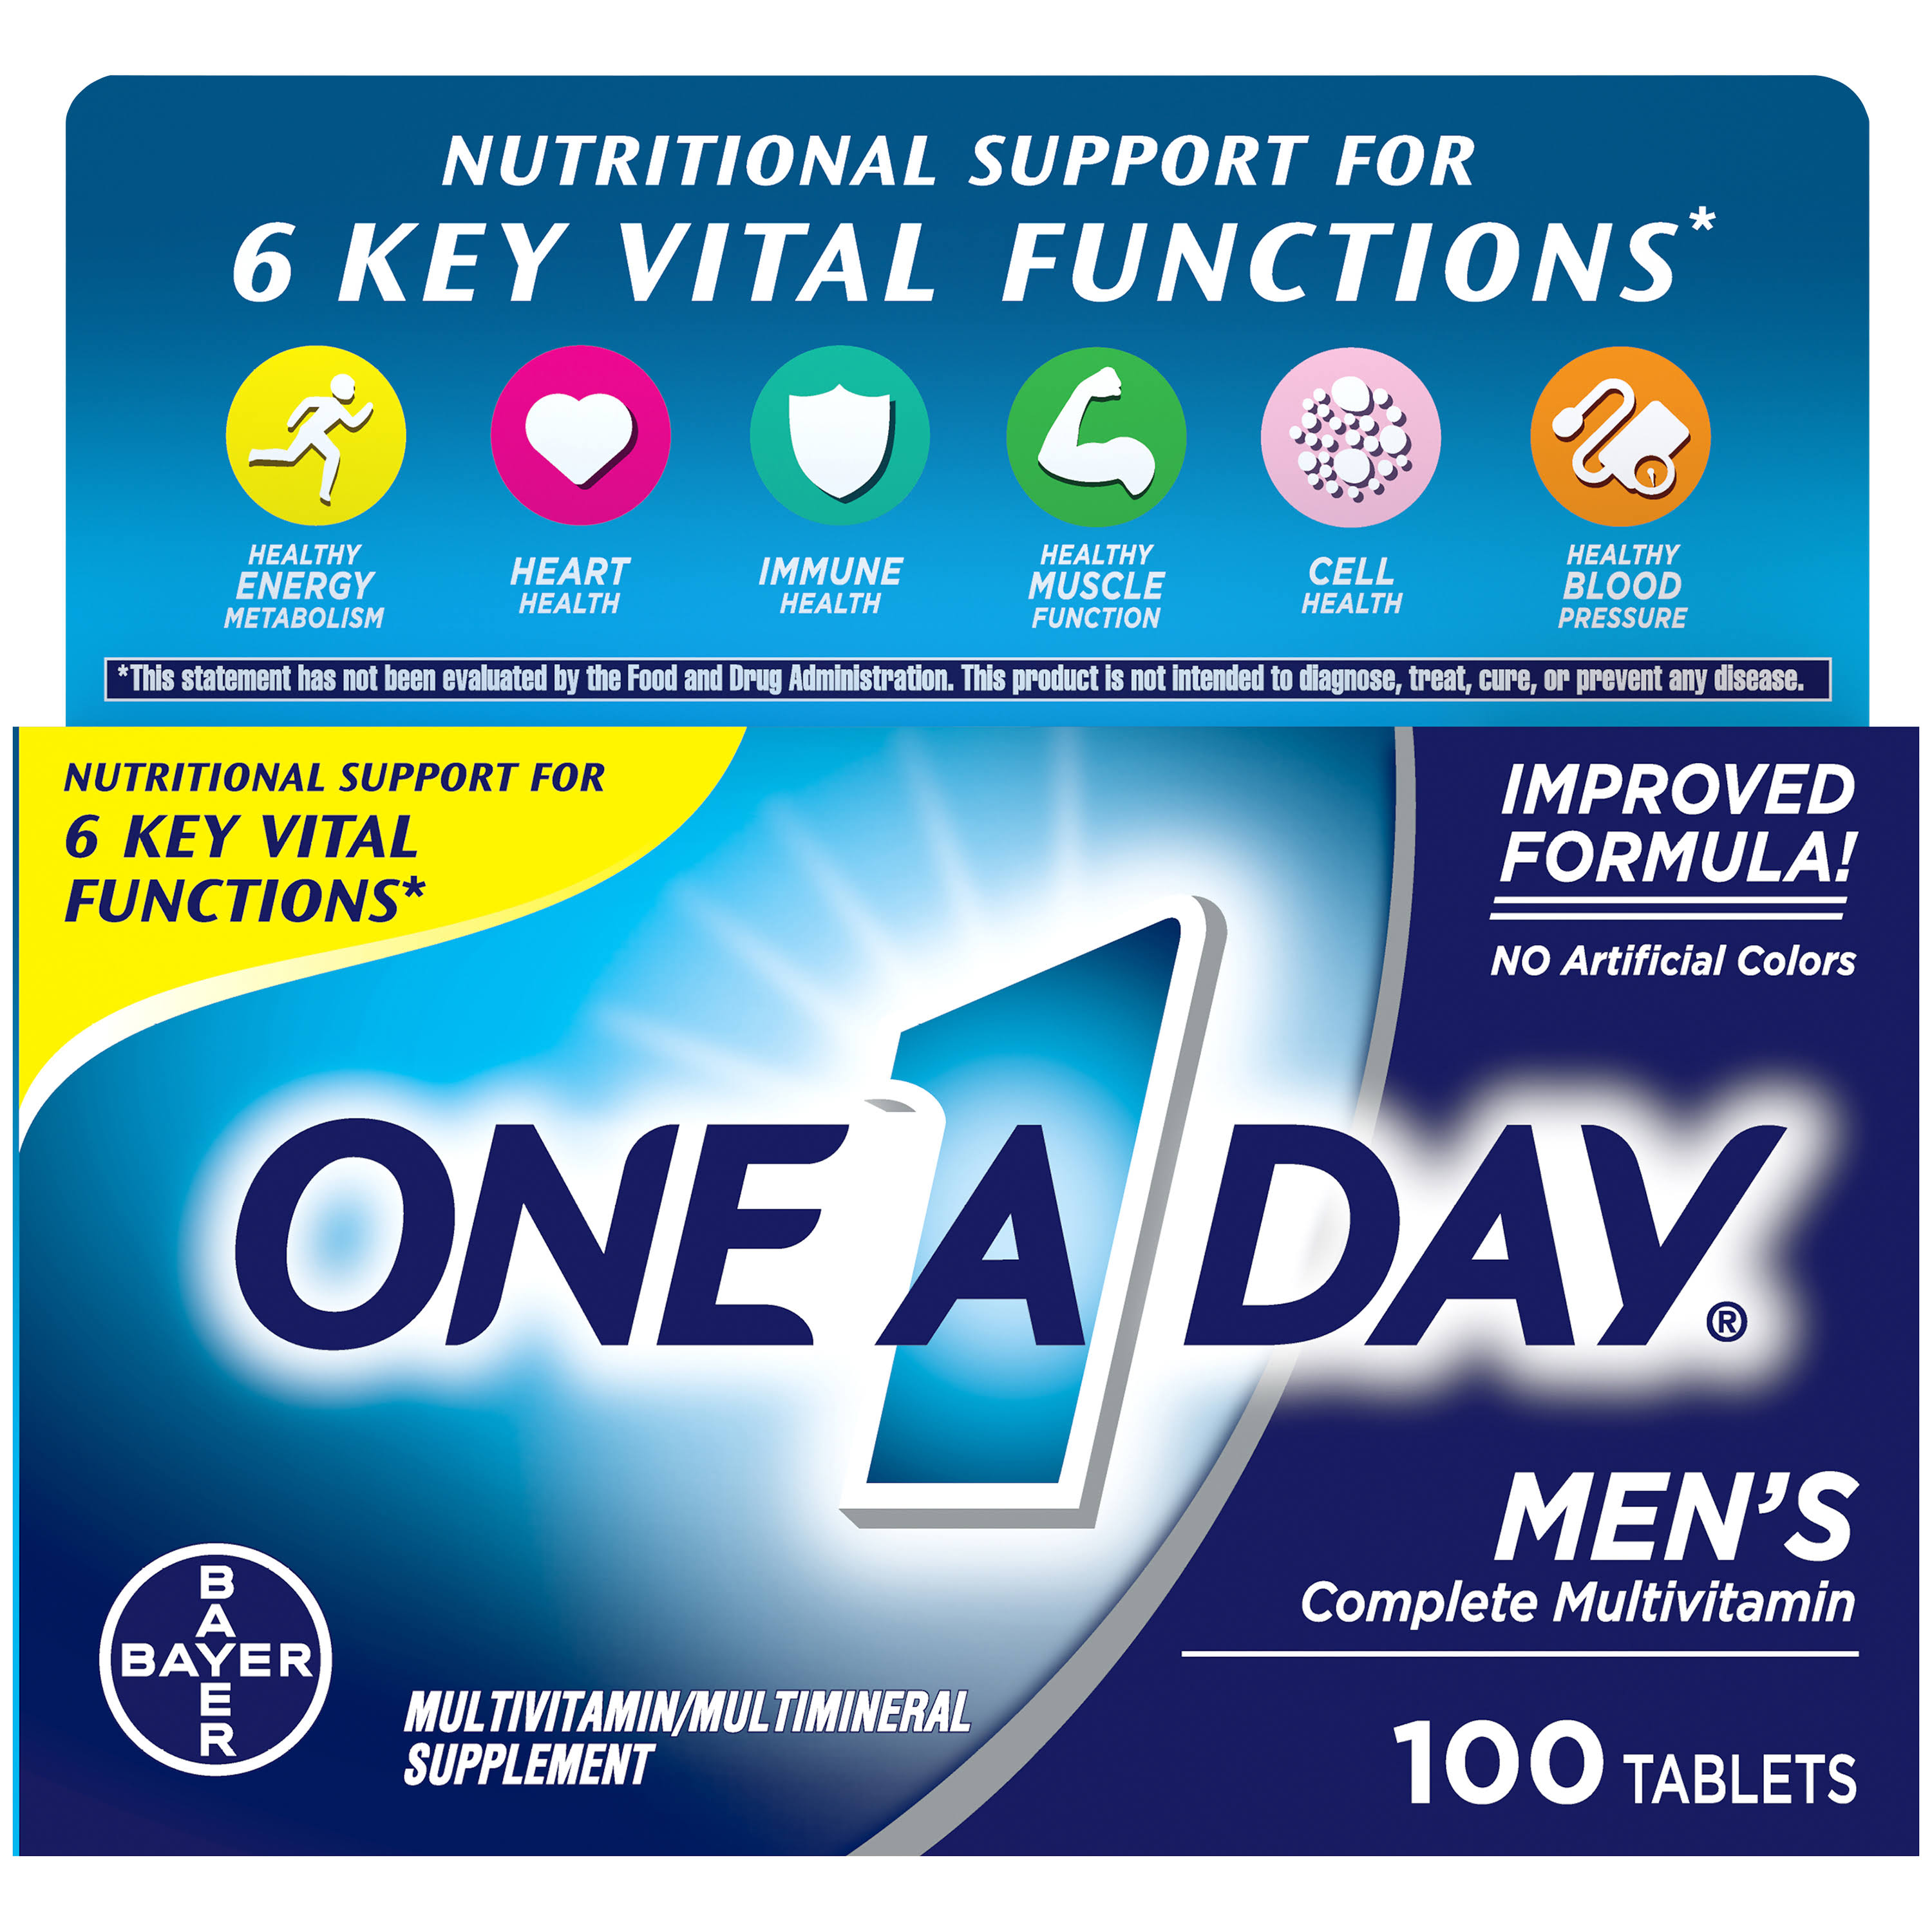 One-A-Day Men's Multivitamin Dietary Supplement - 100 Tablets